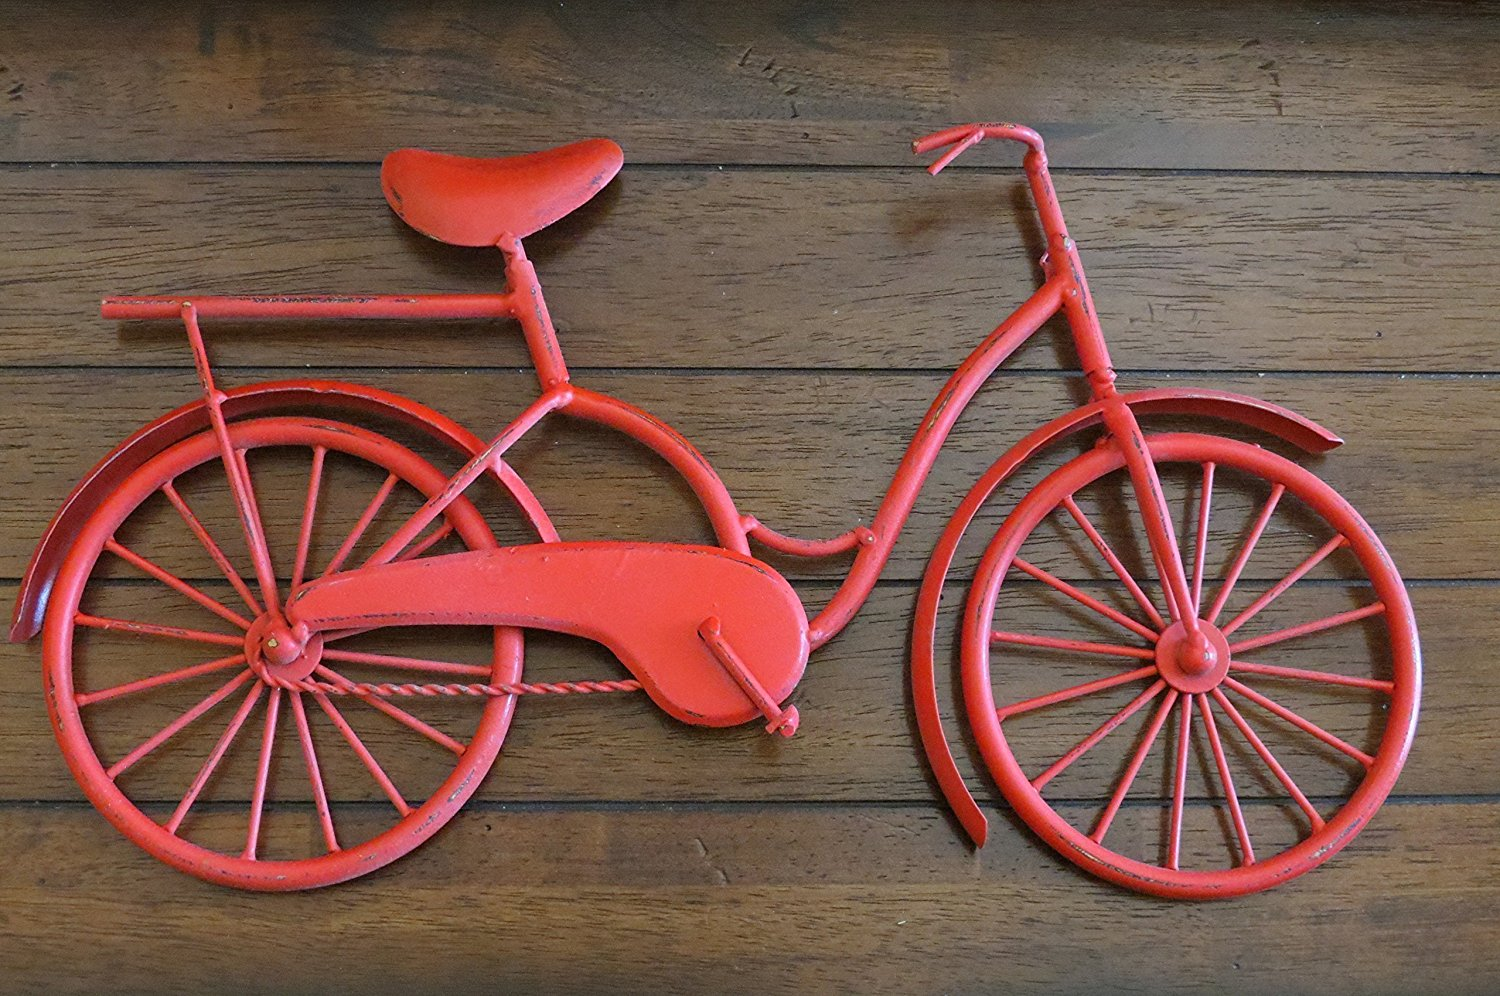 Bike Wall Decor/ Apple Red or Pick Your Color/ Bicycle Metal Wall Decor/ Unique Wall Idea/ Metal Wall Hanging